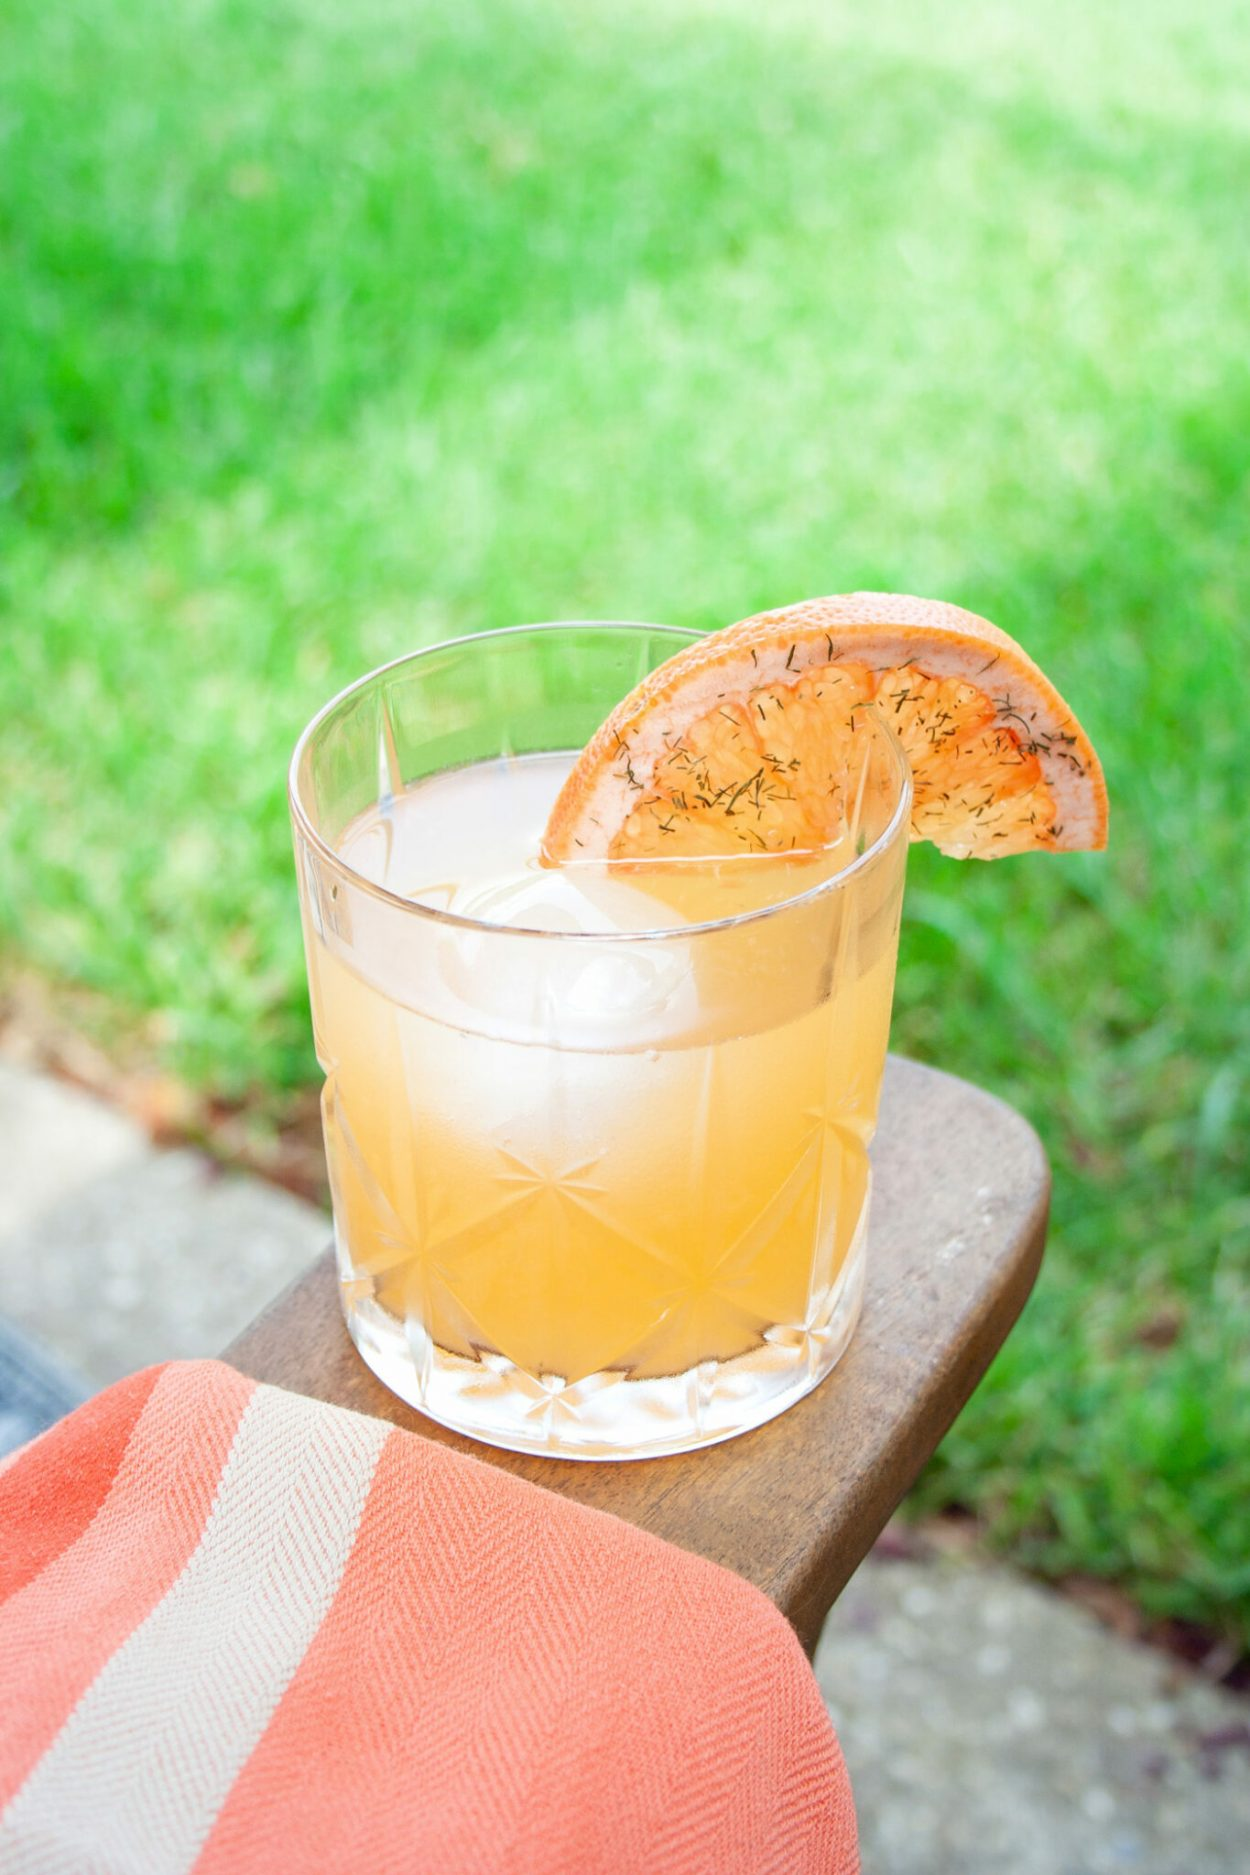 An herbal take on the classic Brown Derby that is a bourbon and grapefruit cocktail mixed together with a honey dill syrup. Can't beat this refreshing bourbon drink. | Elle Talk | #ElleTalk #cocktials #cocktailrecipes #drinks #drinkrecipes #bourbon #brownderby #honeysyrup #Dill